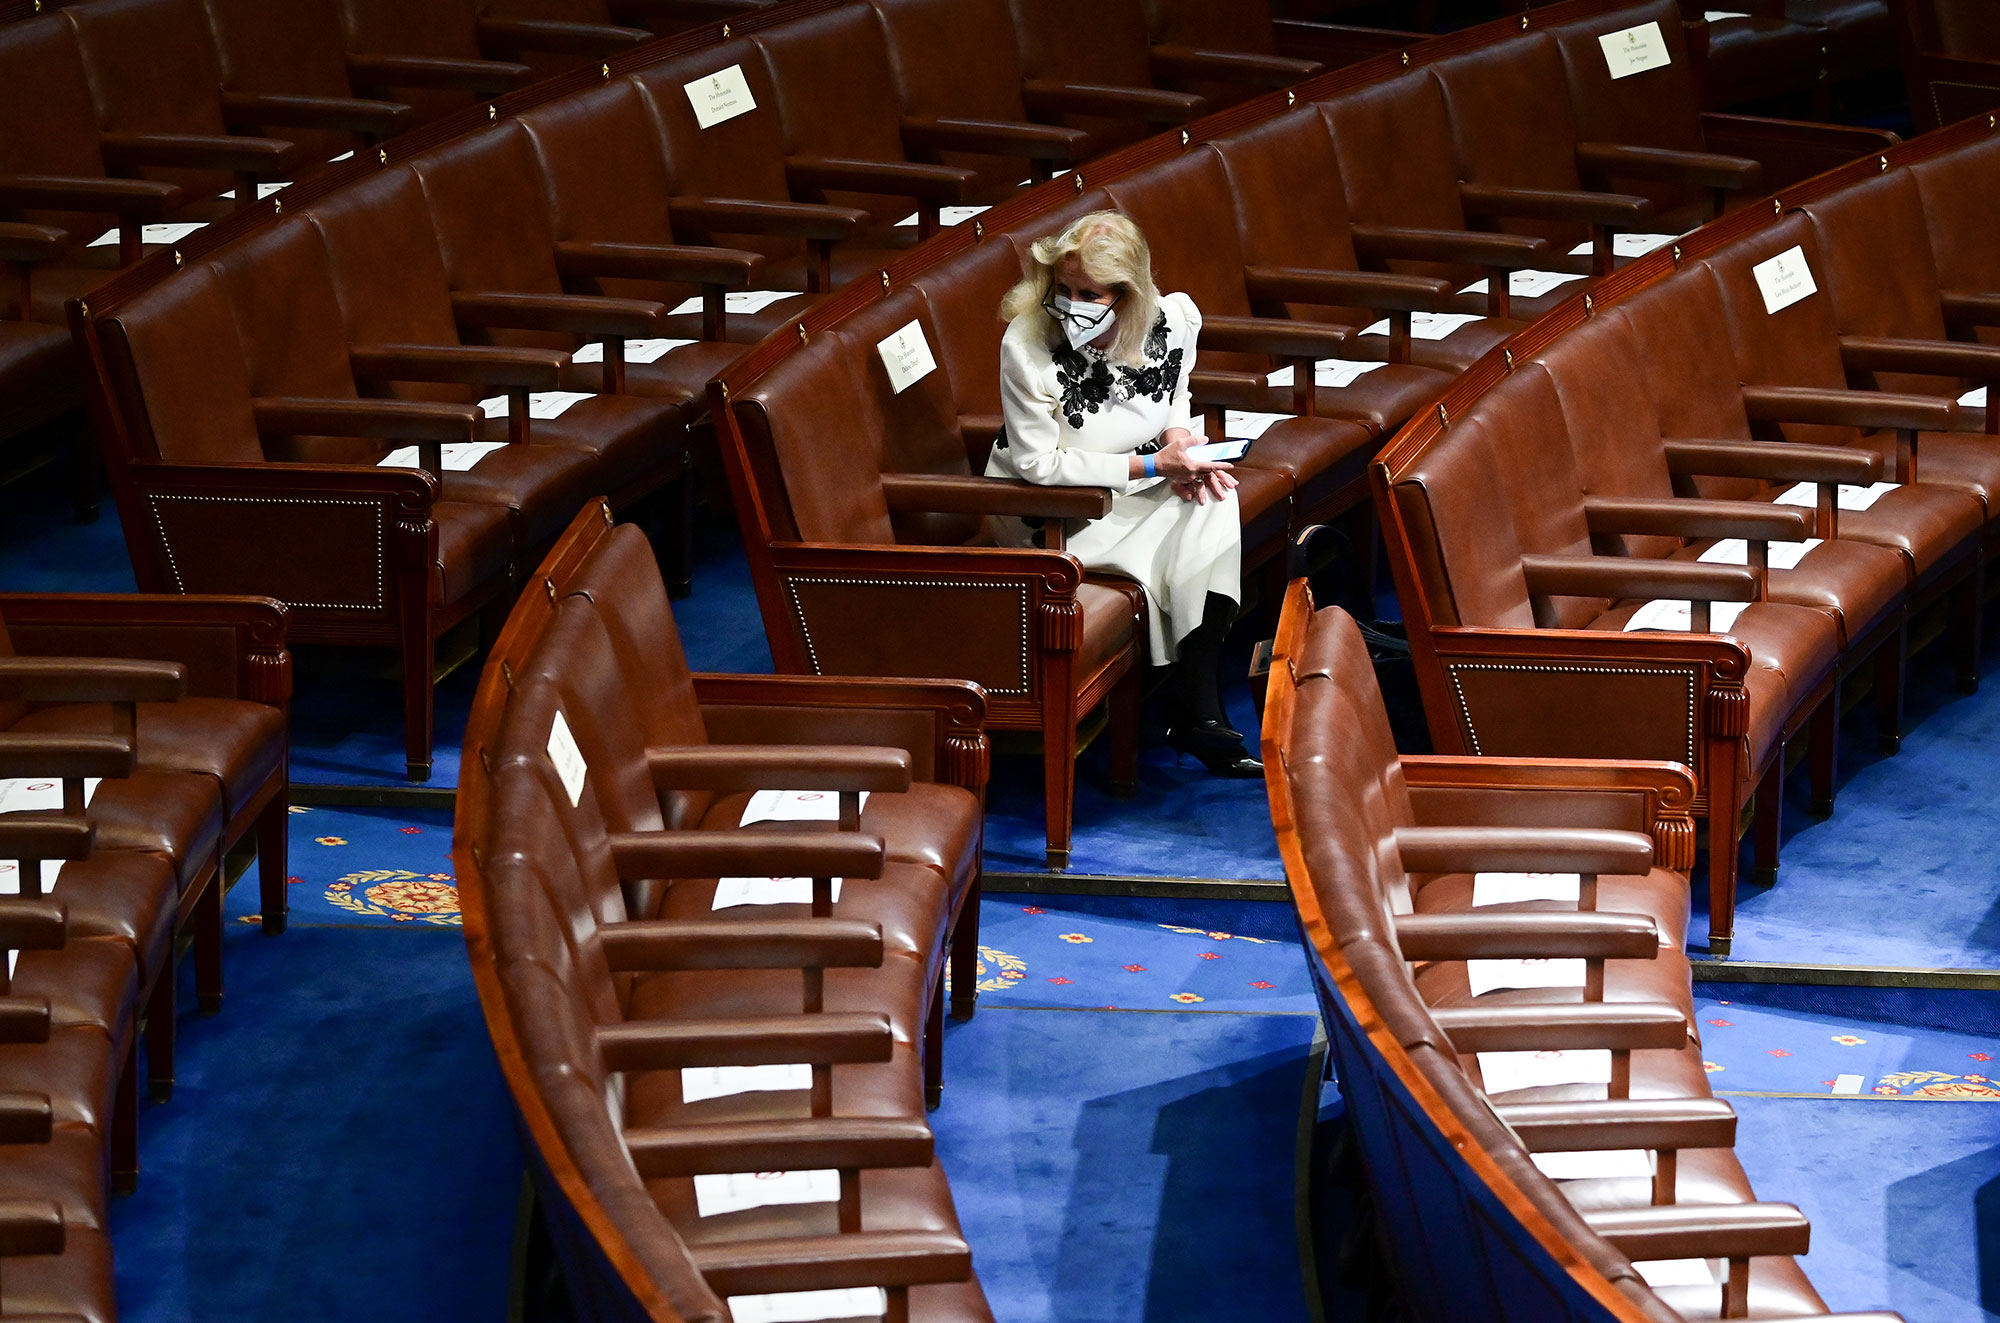 Rep. Debbie Dingell waits in her seat ahead of President Joe Biden speaking to a joint session of Congress, on Wednesday, April 28, in Washington.